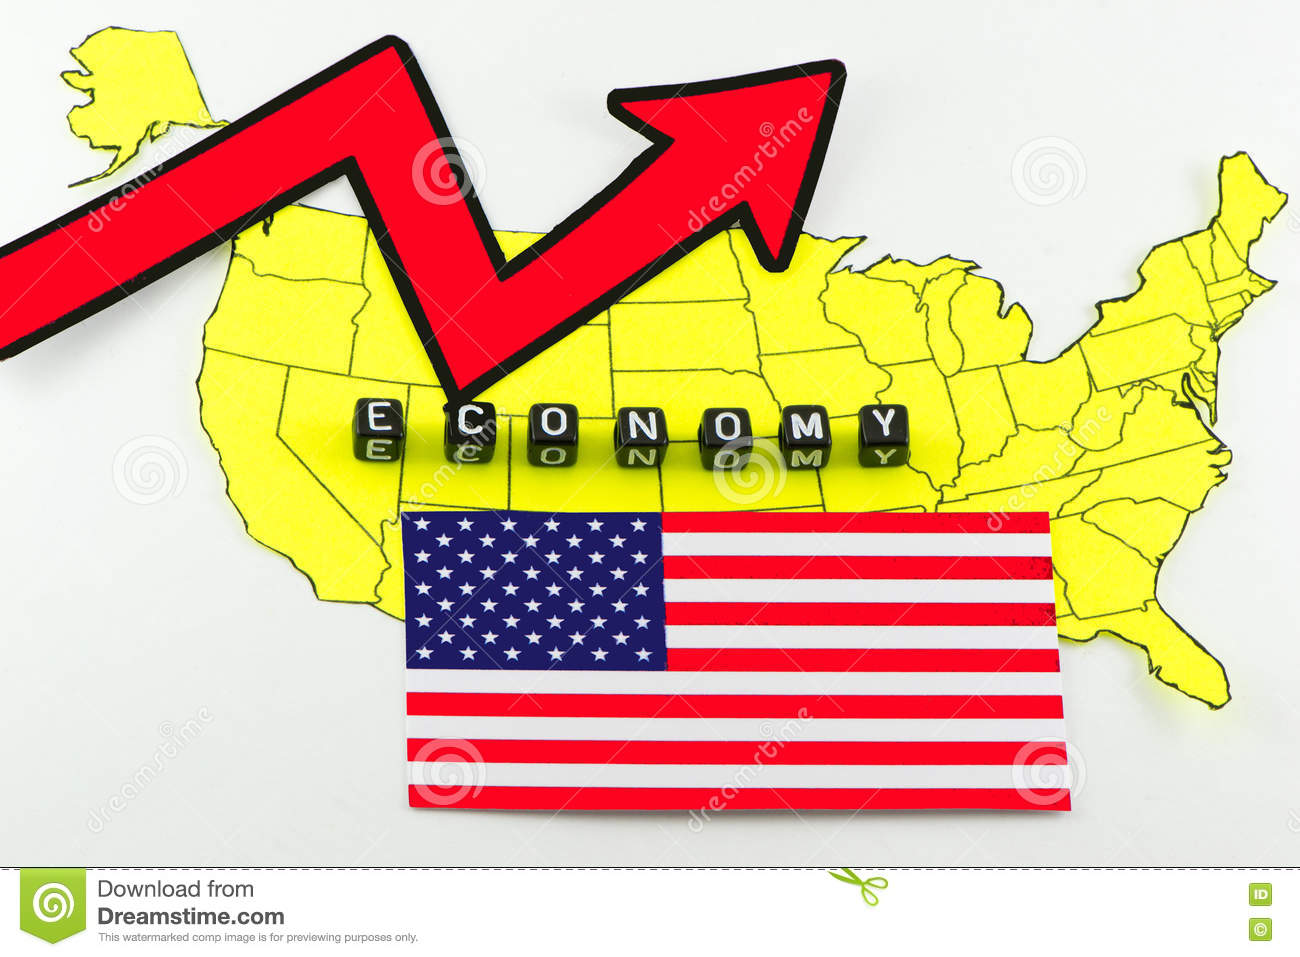 US economic recovery in the concept